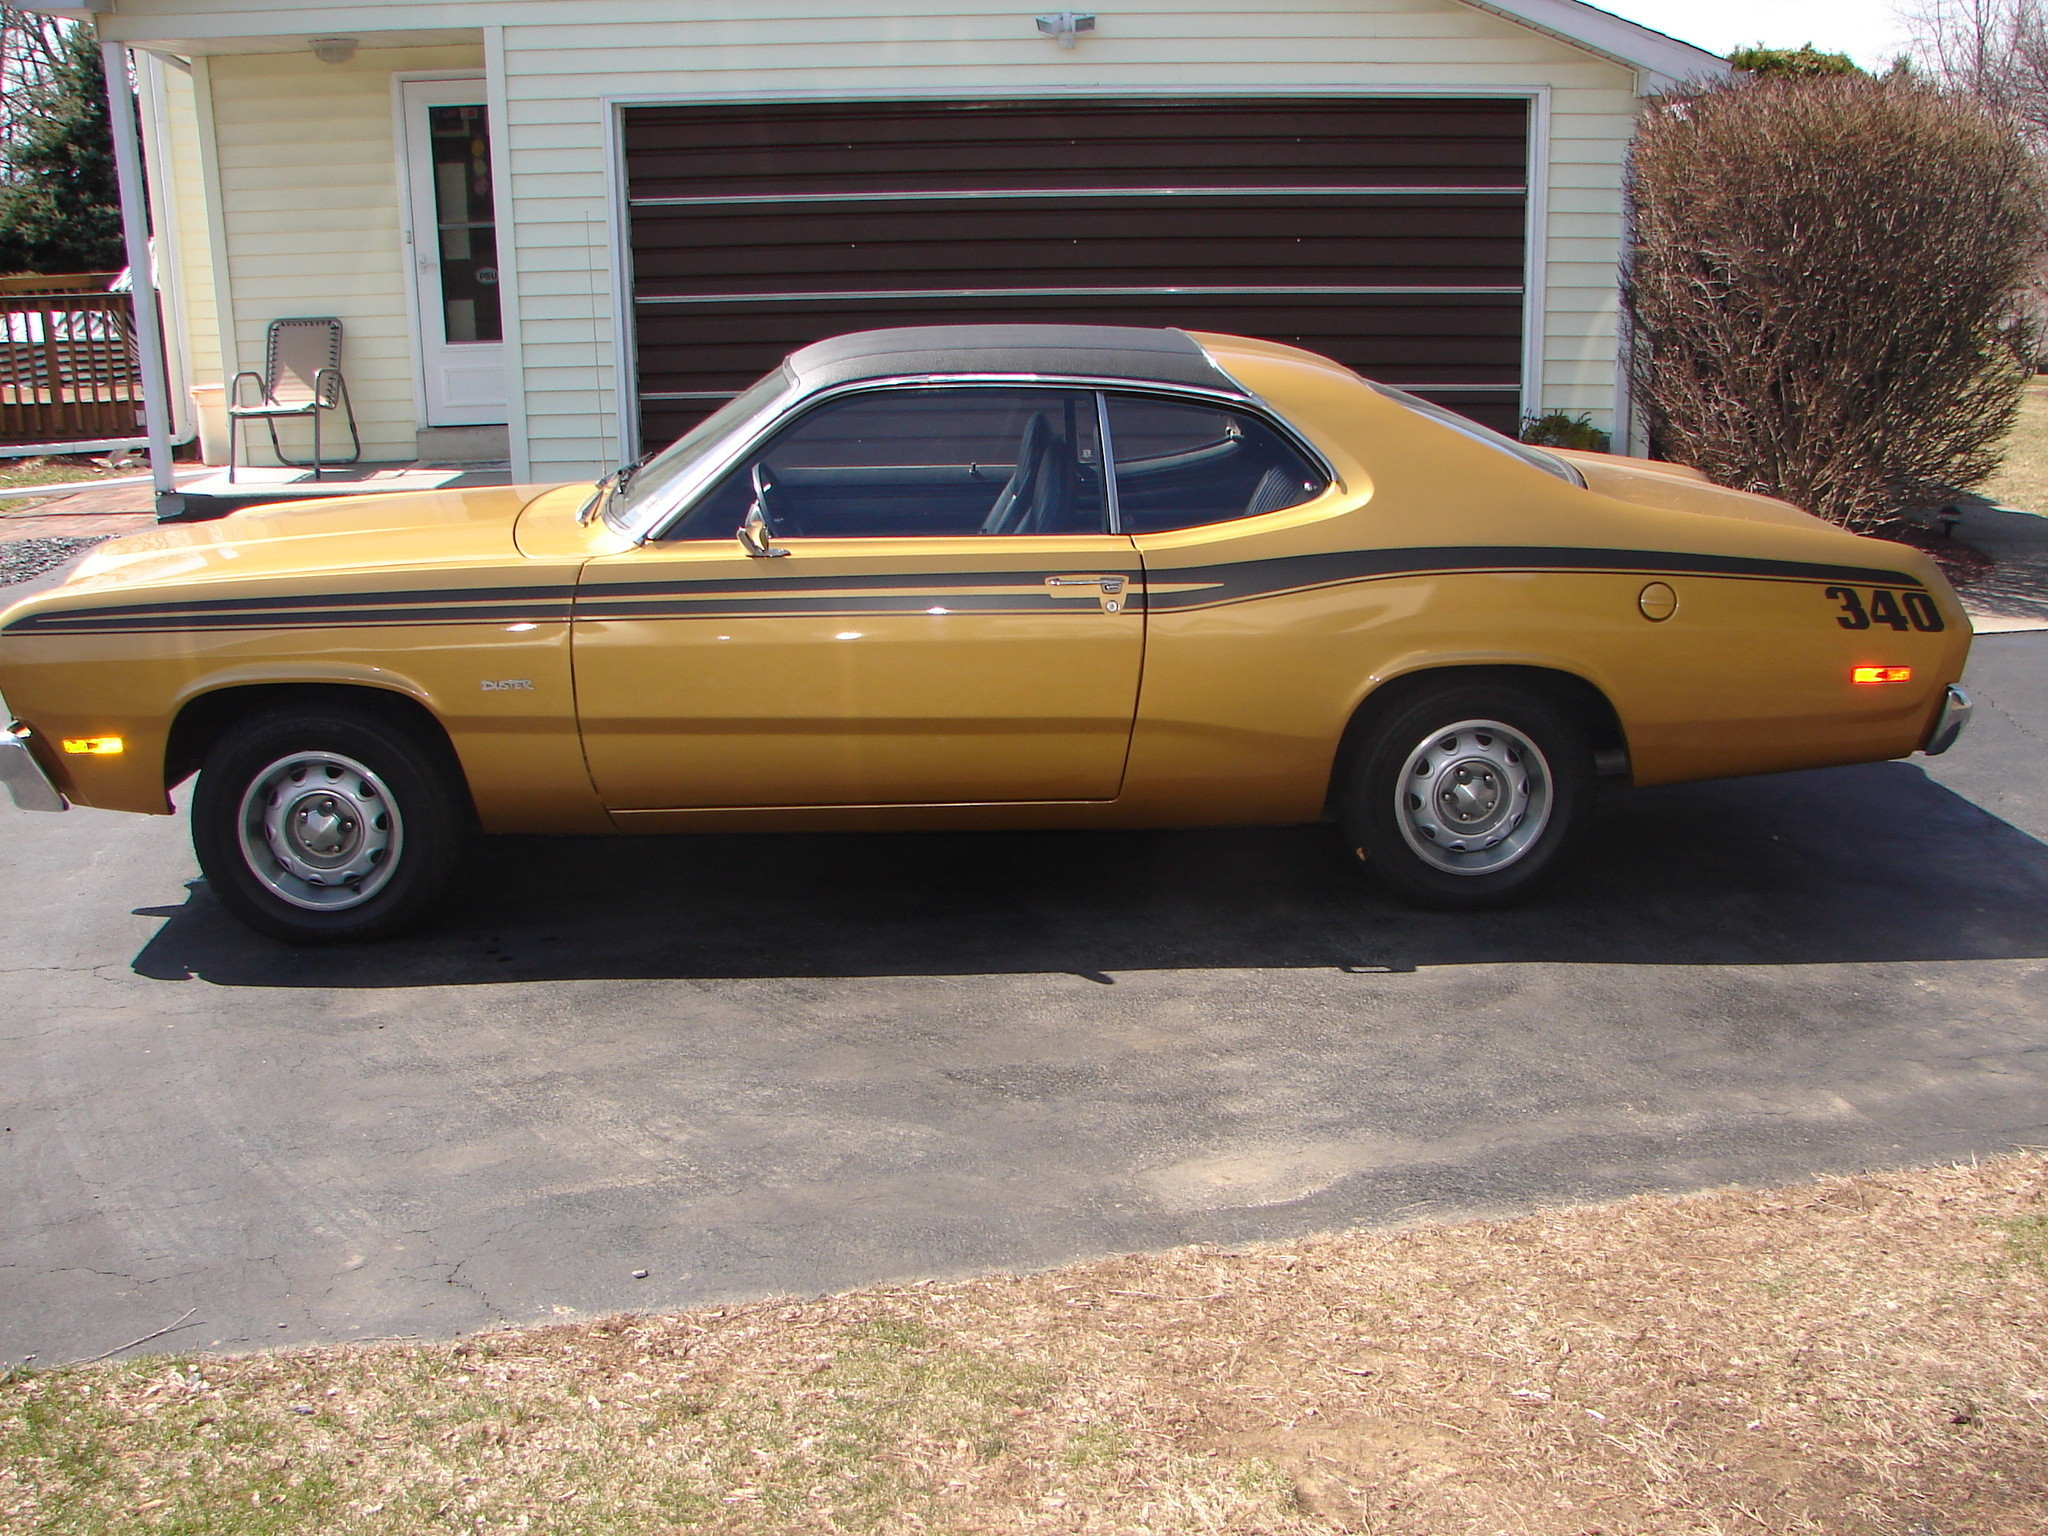 1973 Plymouth 340 Duster The Morning Call